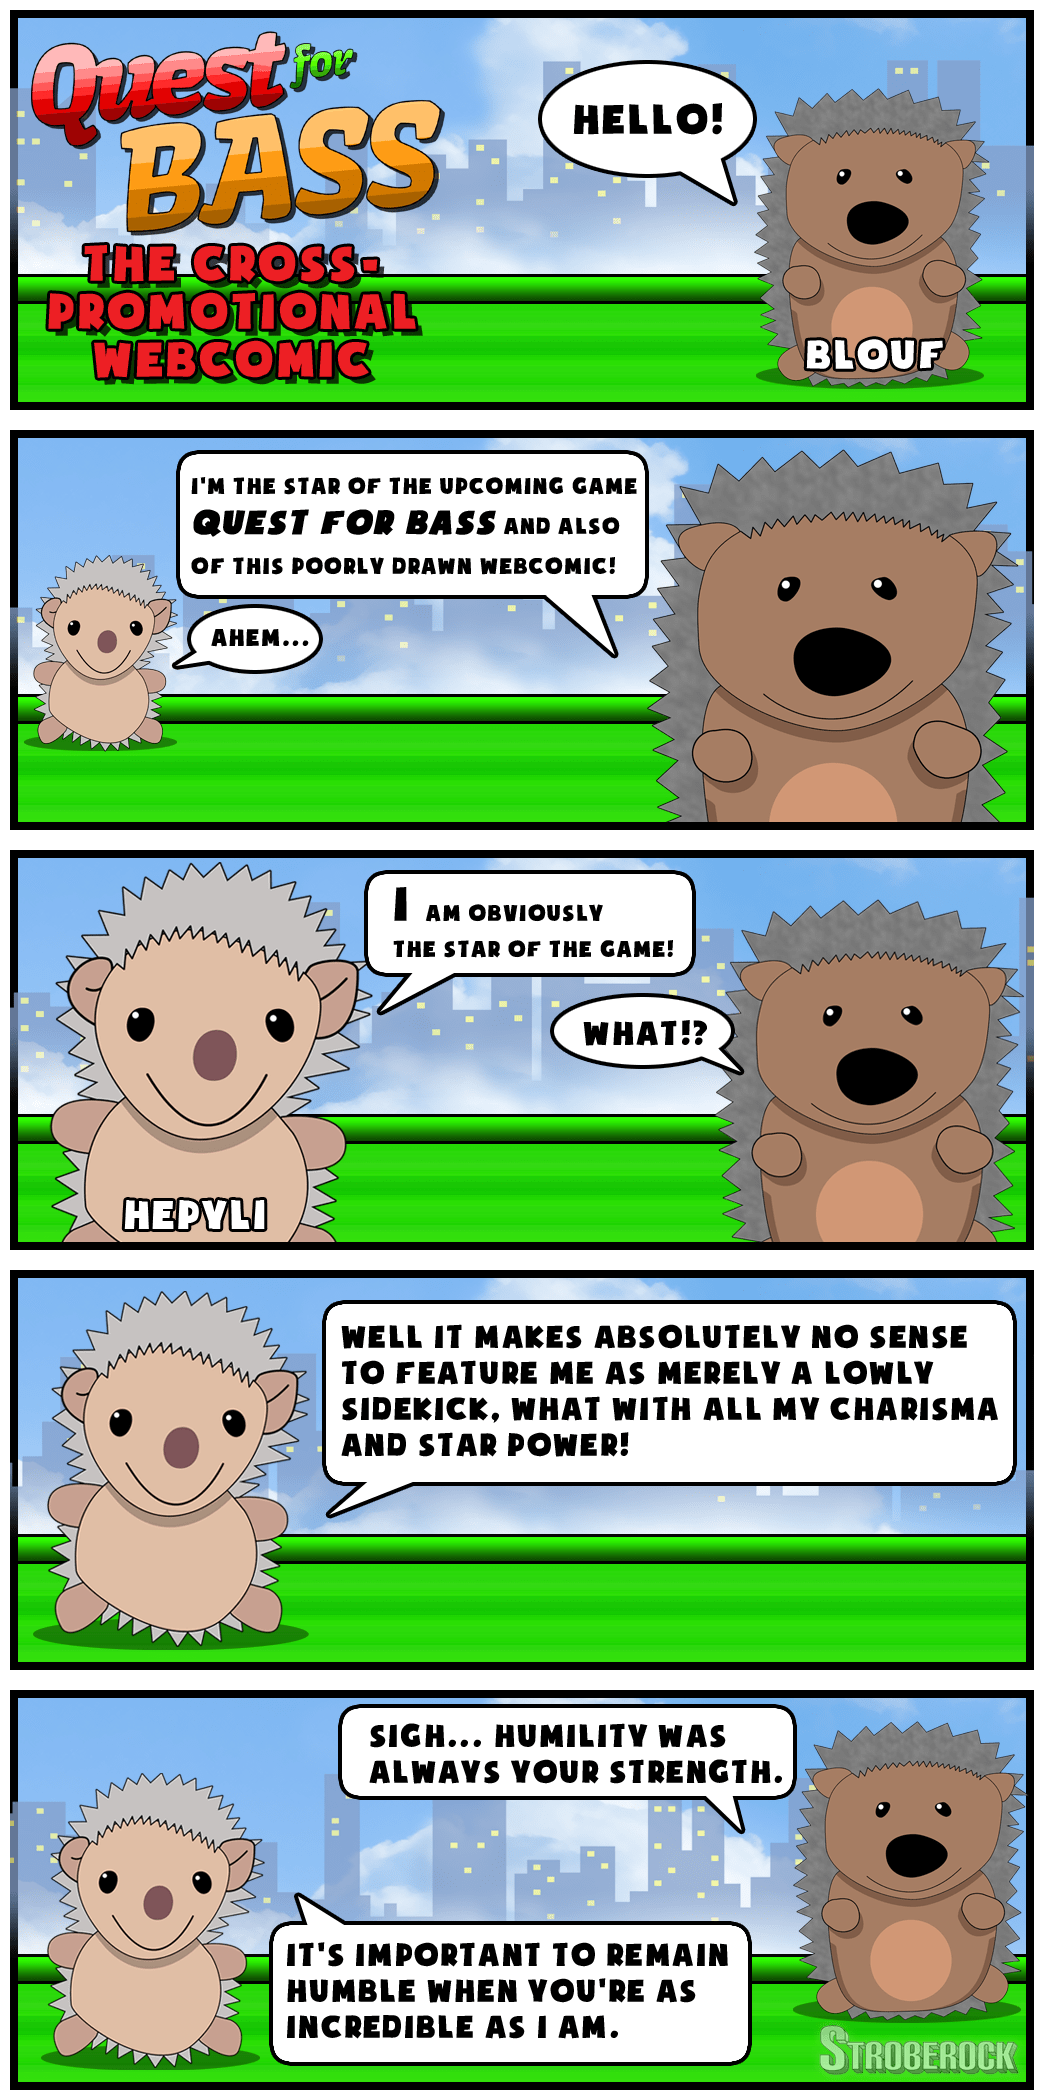 Quest for Bass: The Cross-Promotional Webcomic Description: A webcomic in five panels, featuring two characters, Blouf and Hepyli. Panel 1. Blouf stands in the foreground. Blouf: Hello! Panel 2. Blouf stands in the foreground. Hepyli stands in the back. Blouf: I'm the star of the upcoming game Quest for Bass, and also of this poorly drawn webcomic! Hepyli: Ahem.... Panel 3. Both Hepyli and Blouf stand in the foreground. Hepyli: I am obviously the star of the game! Blouf: What!? Panel 4. Hepyli stands in the foreground. Hepyli: Well it makes absolutely no sense to feature me as merely a lowly sidekick, what with all my charisma and star power! Panel 5. Hepyli and Blouf stand in the foreground. Blouf: Sigh... humility was always your strength. Hepyli: It's important to remain humble when you're as incredible as I am.